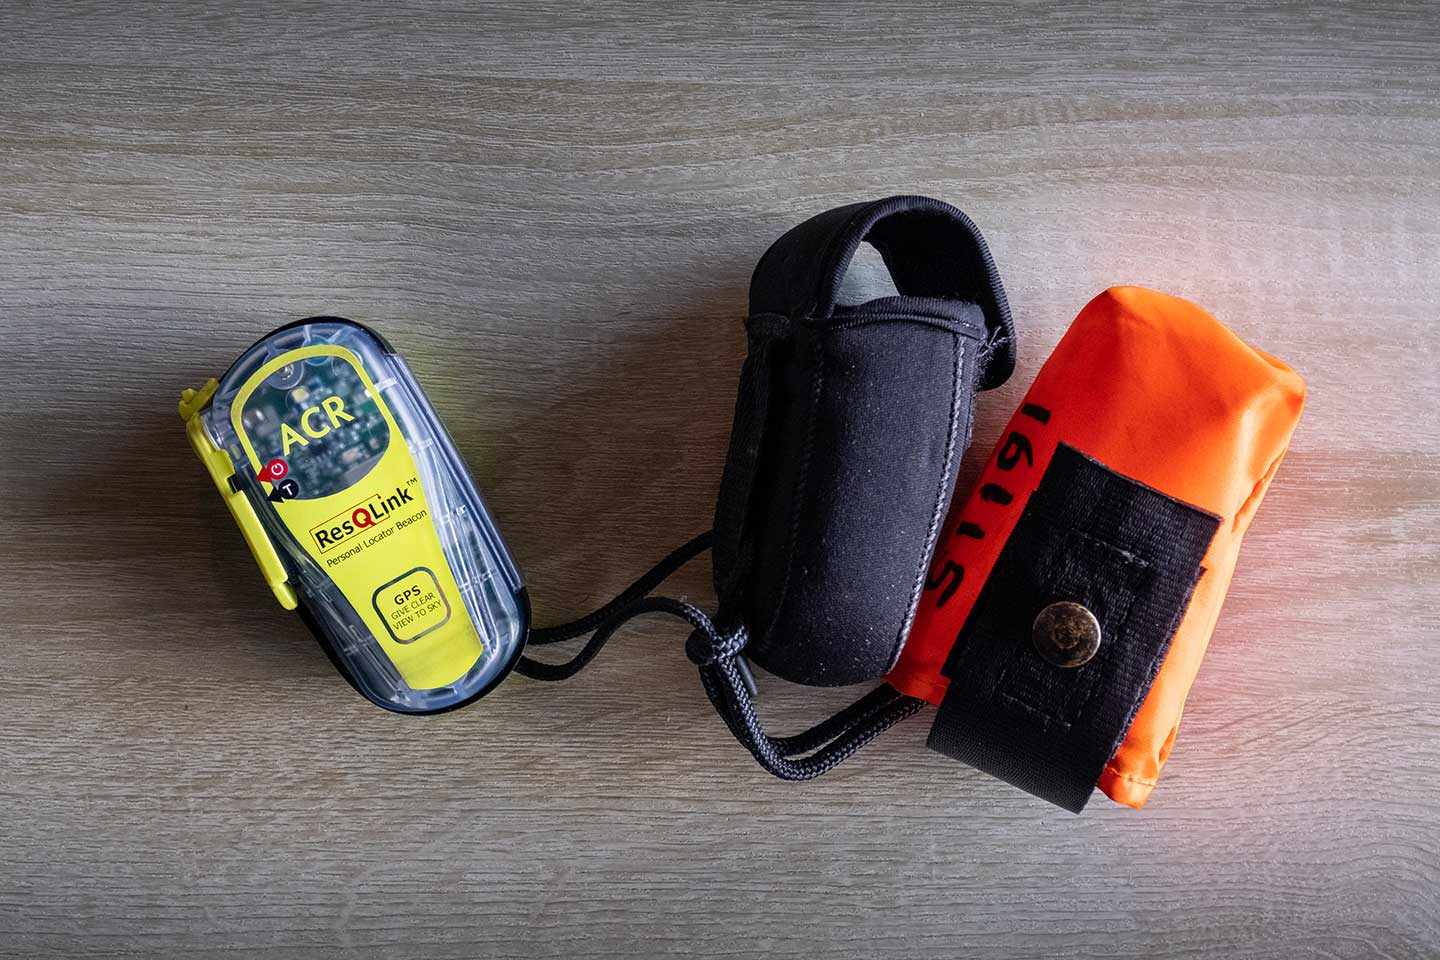 A personal locator beacon on a table. An important piece of safety equipment that should be part of any Great Walks packing list.